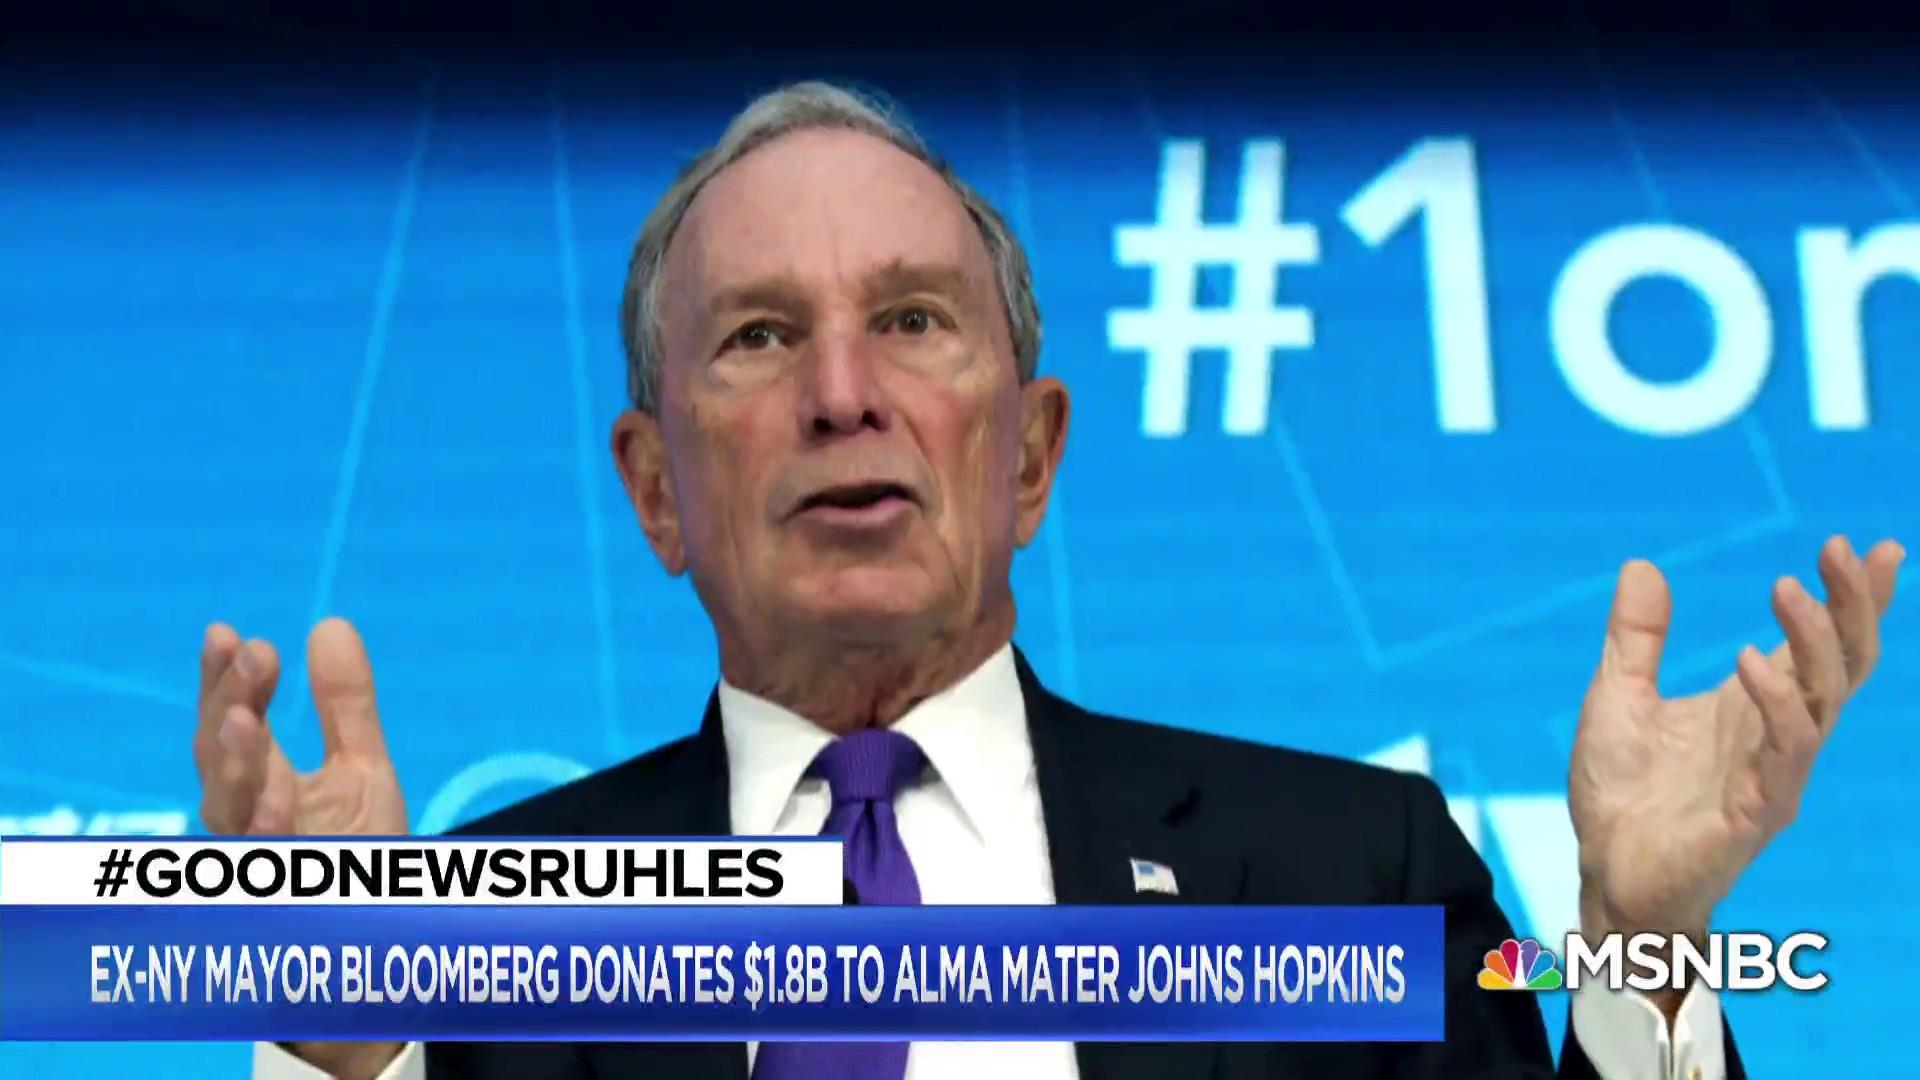 #GoodNewsRUHLES: Mike Bloomberg donates $1.8B to Johns Hopkins